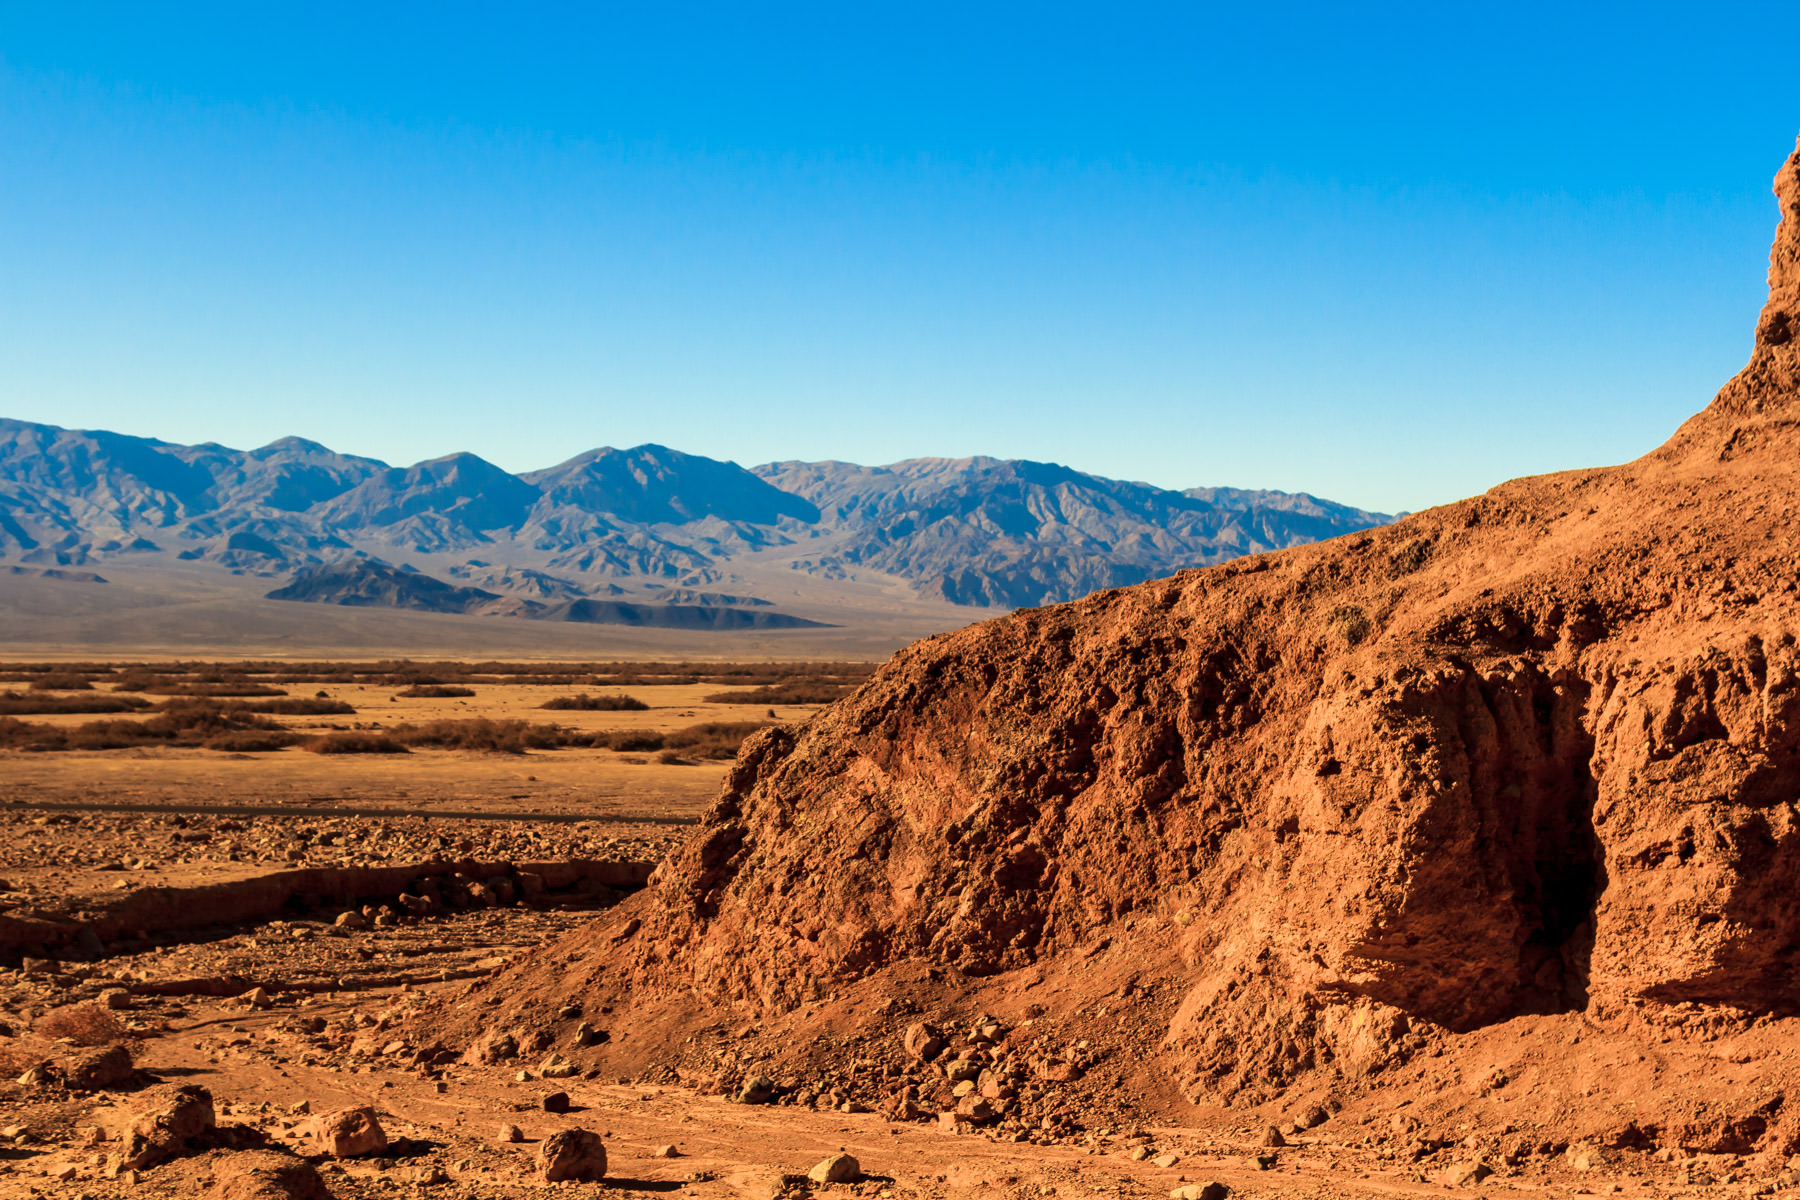 A reddish-brown landscape in California's Death Valley resembles a desolate view of Mars.